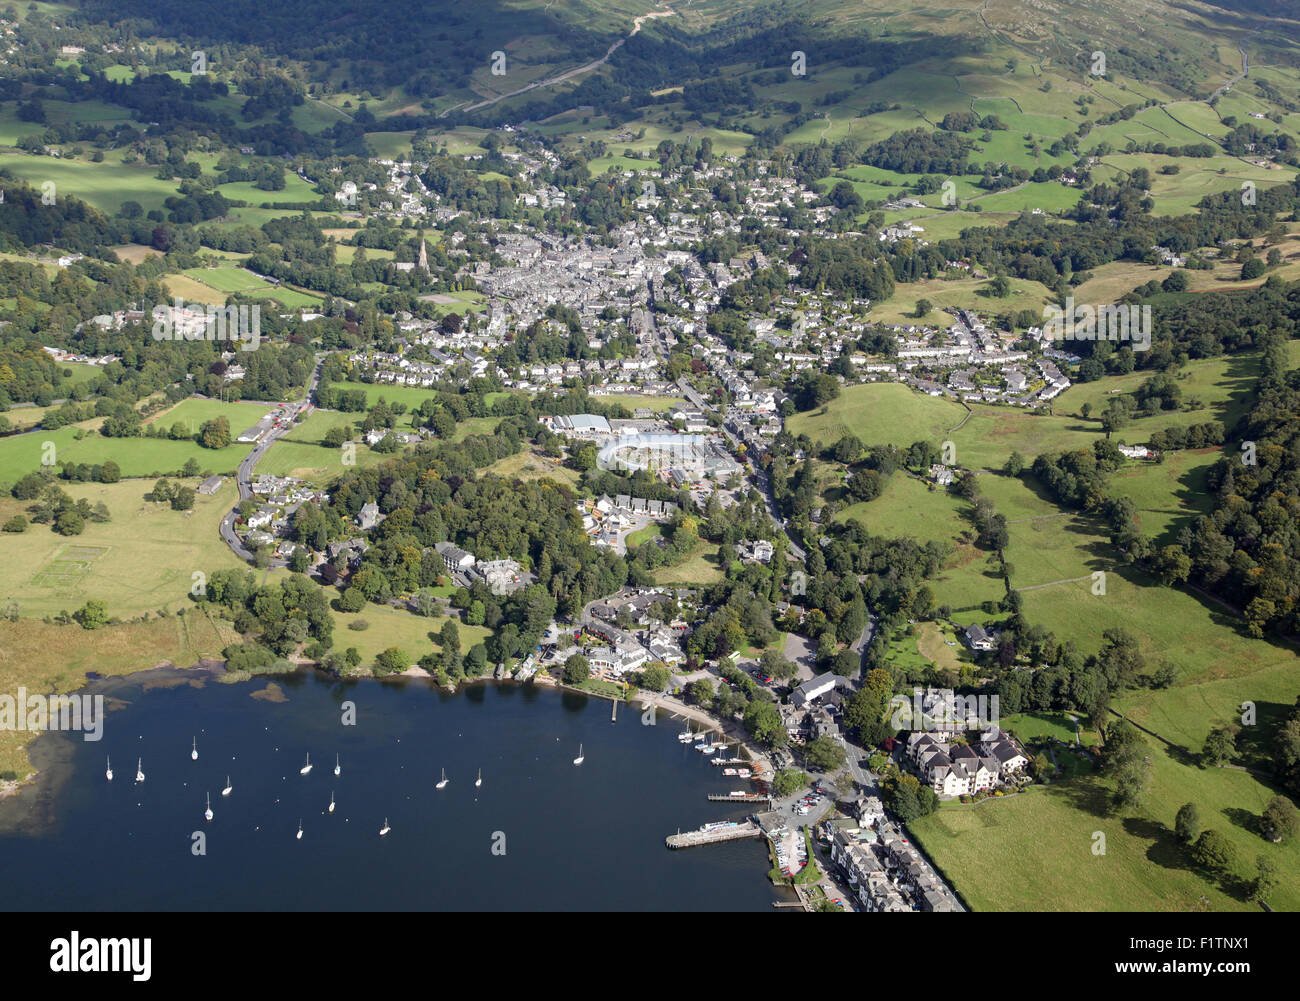 aerial view of Waterhead & Ambleside at the top of Lake Windermere, Cumbria, UK - Stock Image